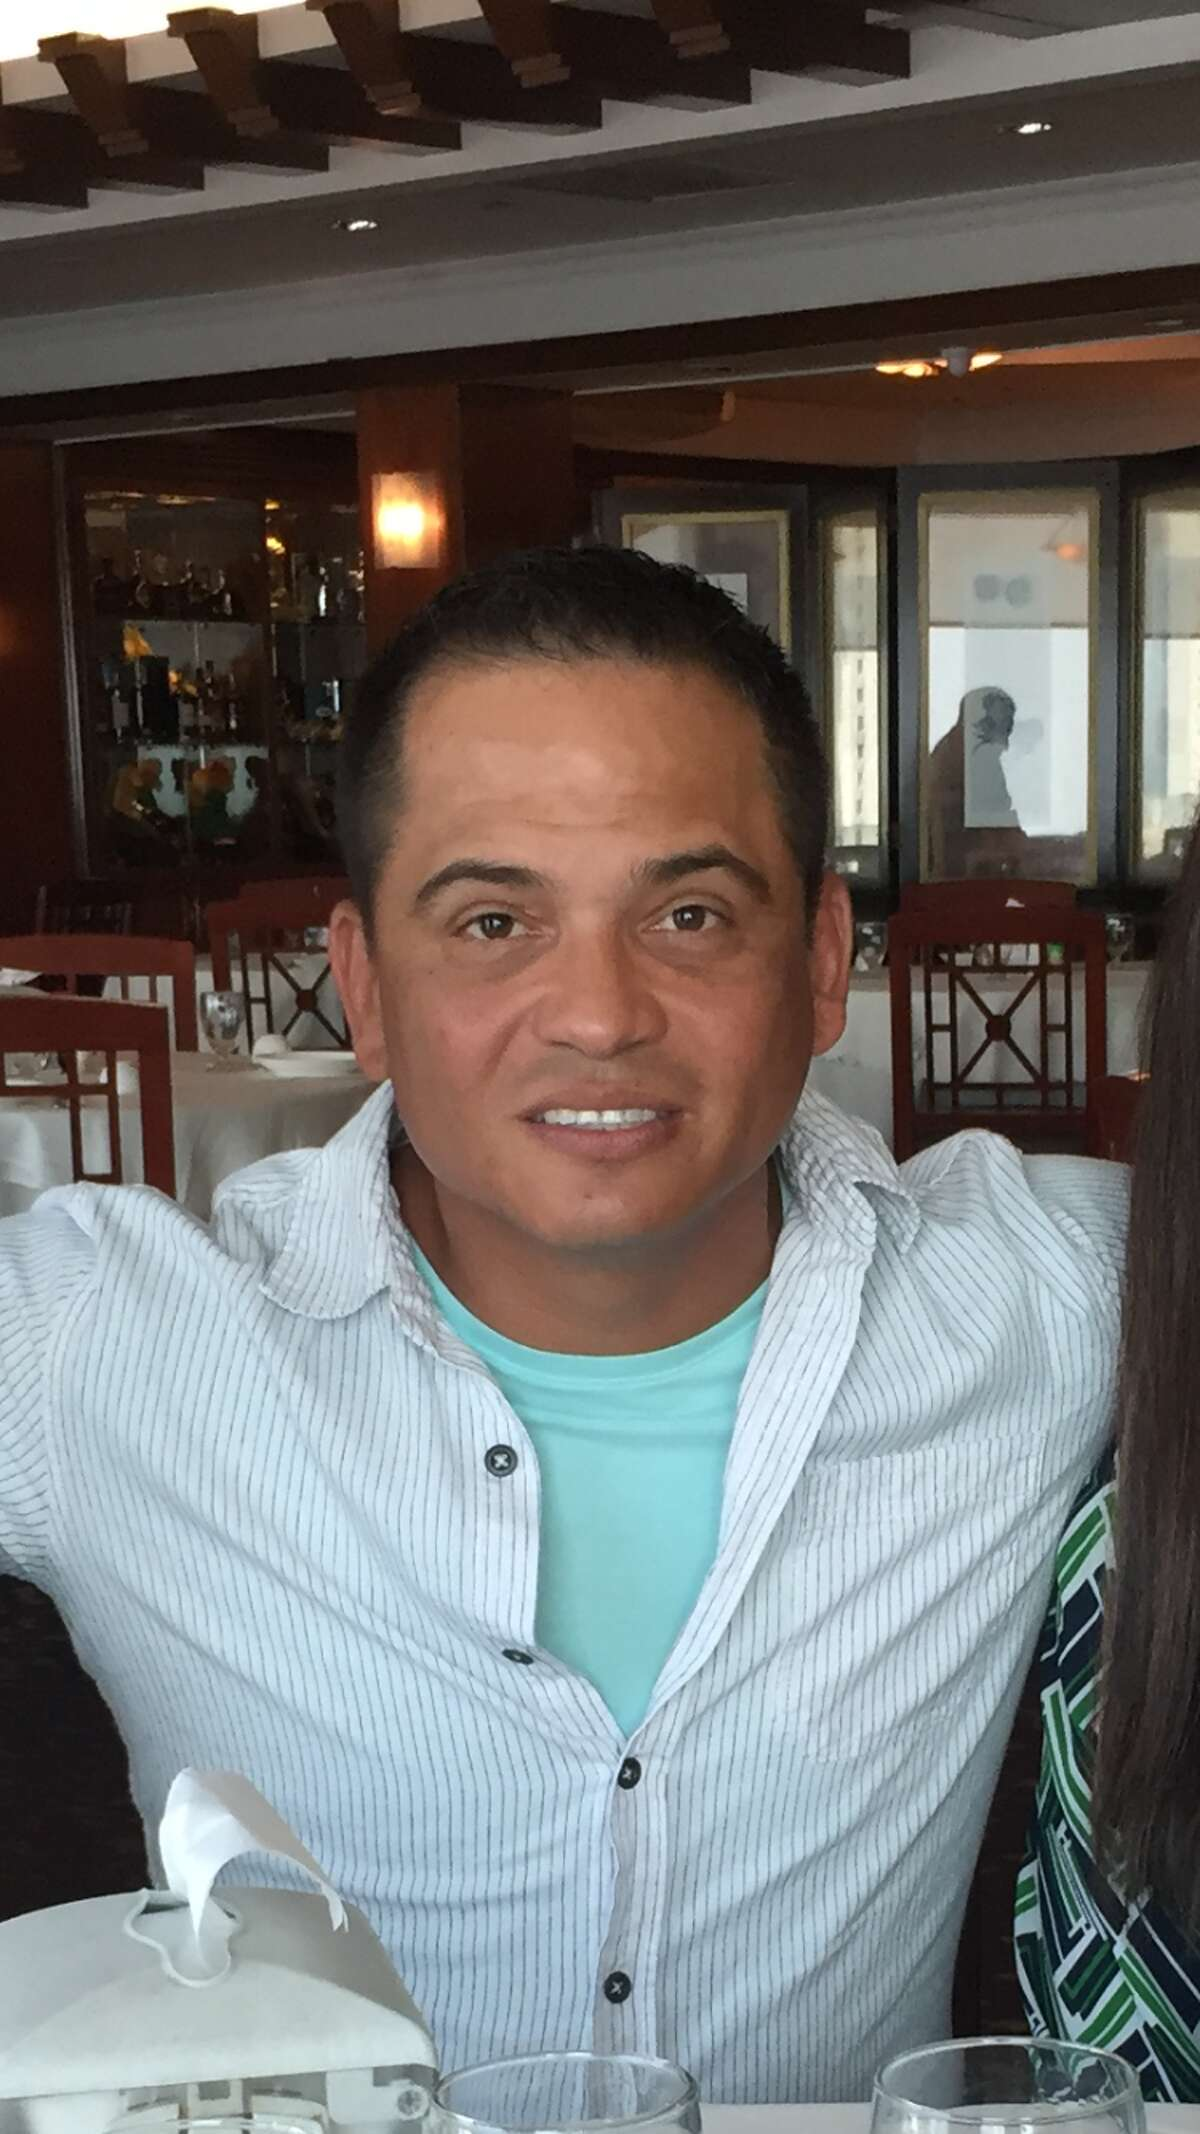 Gabriel Cornejo, of Houston, is on the hook for $65,000 in child support for a child that's not his.